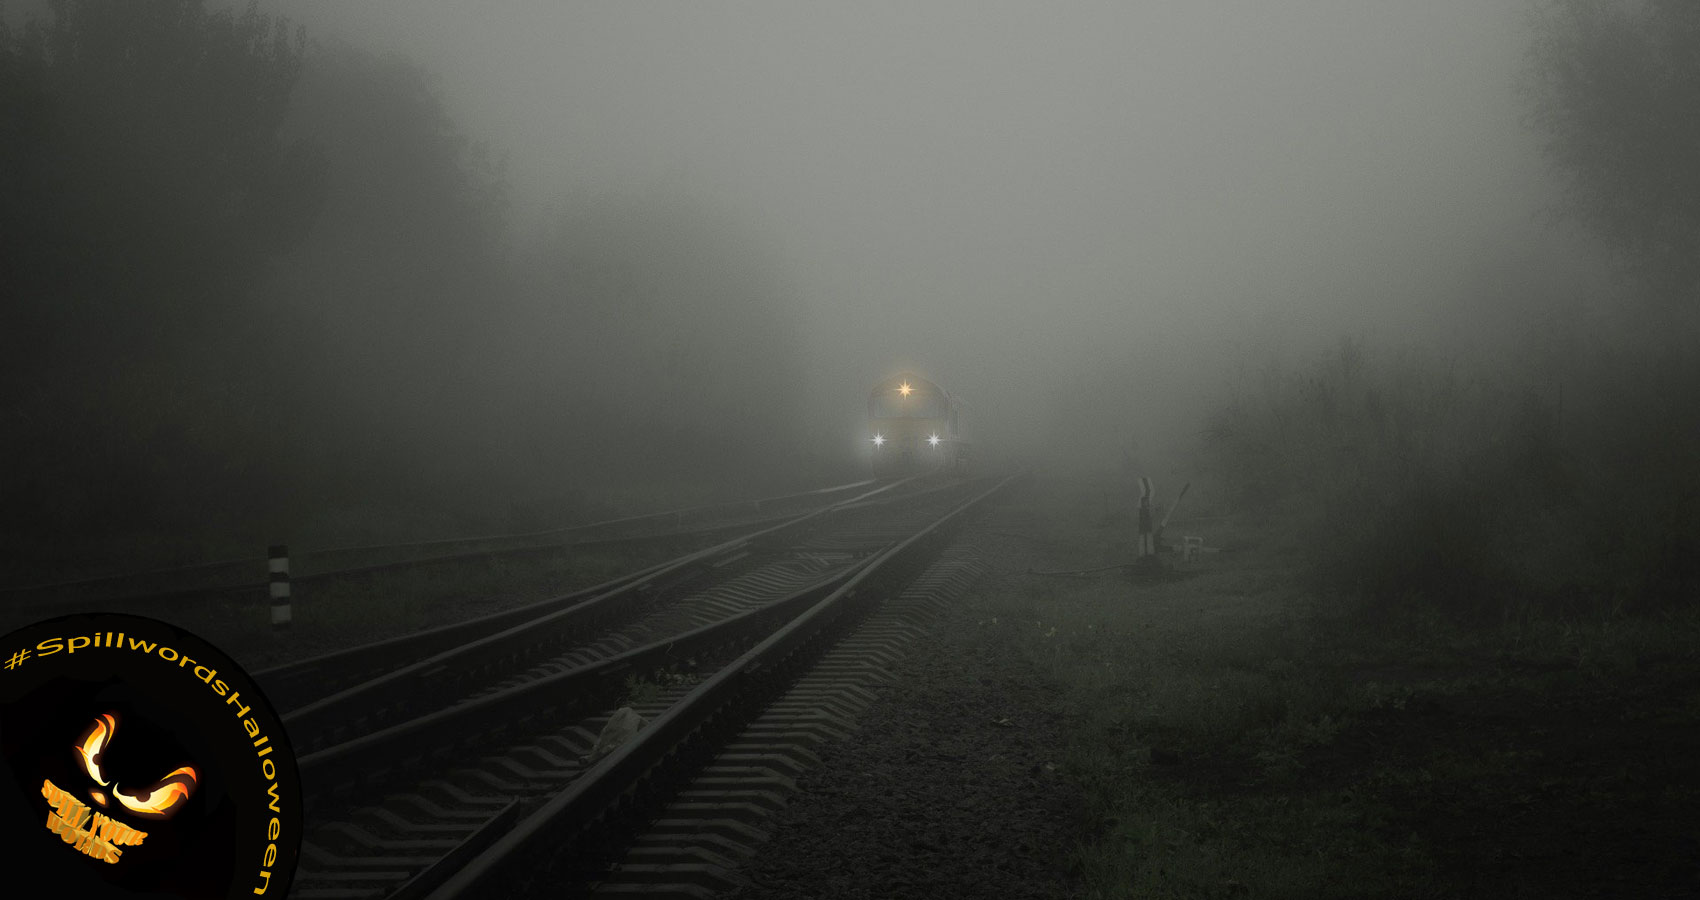 Keep Off The Tracks, micro fiction by LB Sedlacek at Spillwords.com